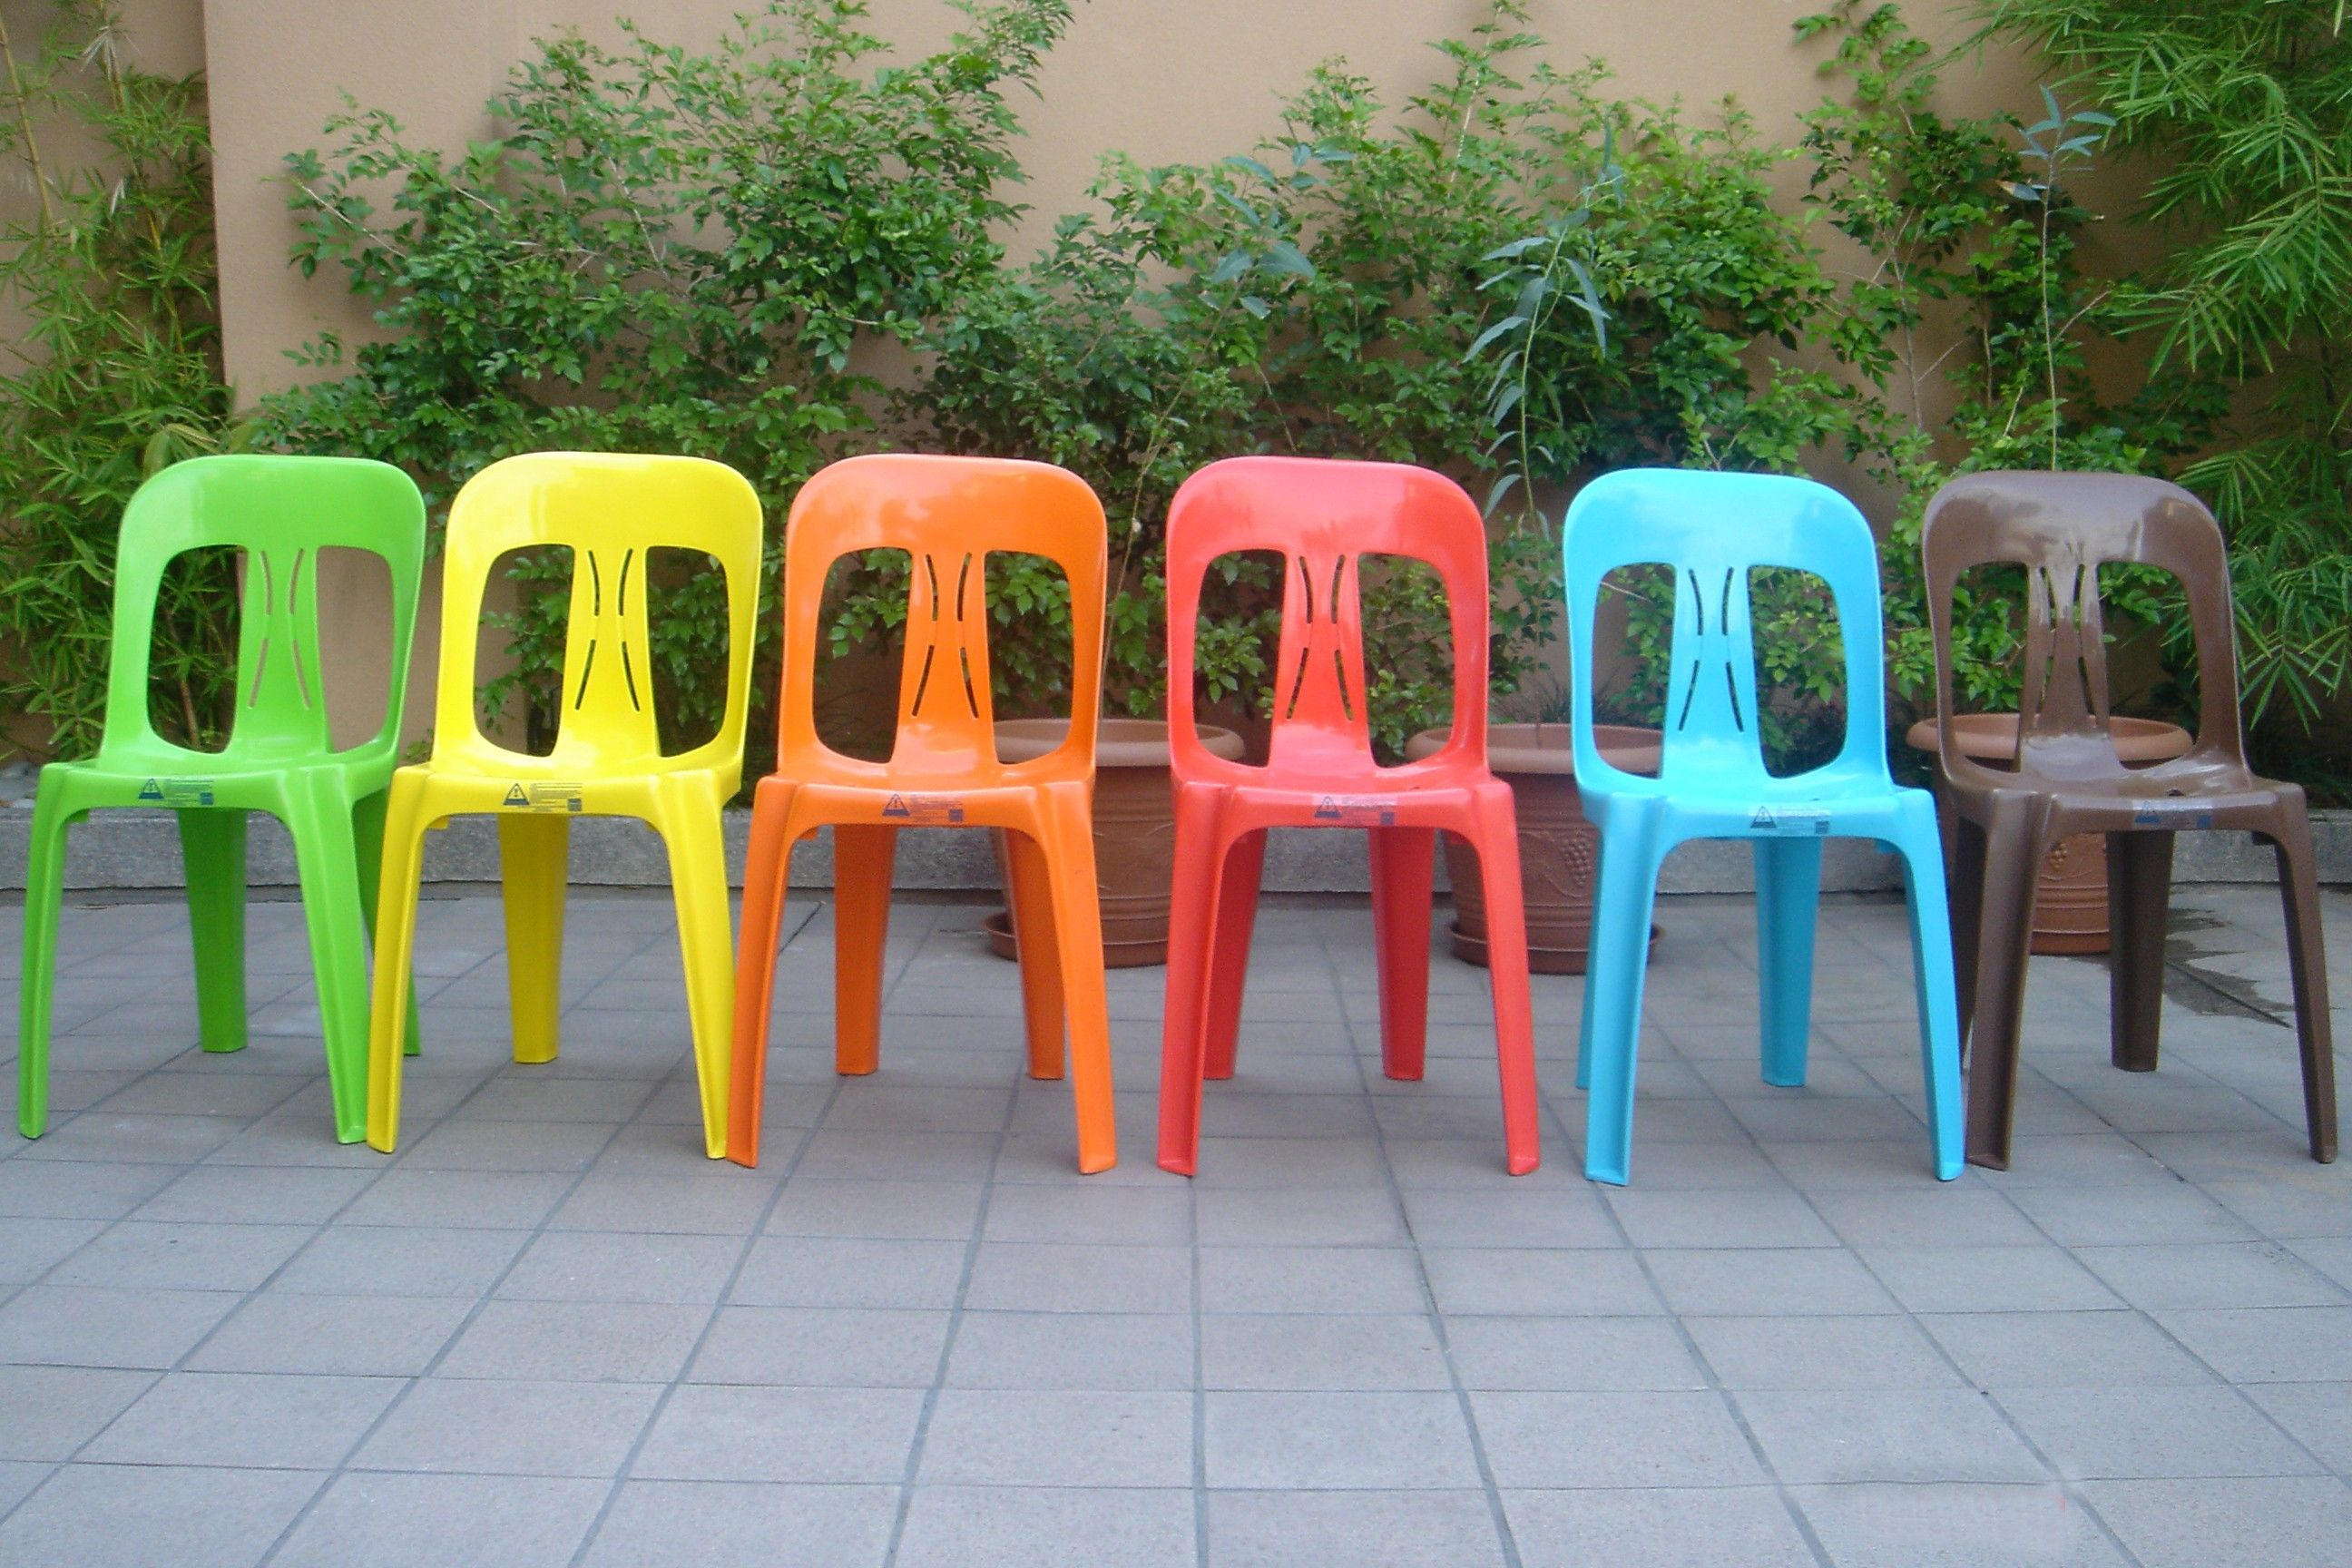 Candy Chairs Size 506 Mm X 435 Mm X 755 Mm Plastic Tables Table And Chairs Bamboo Chair